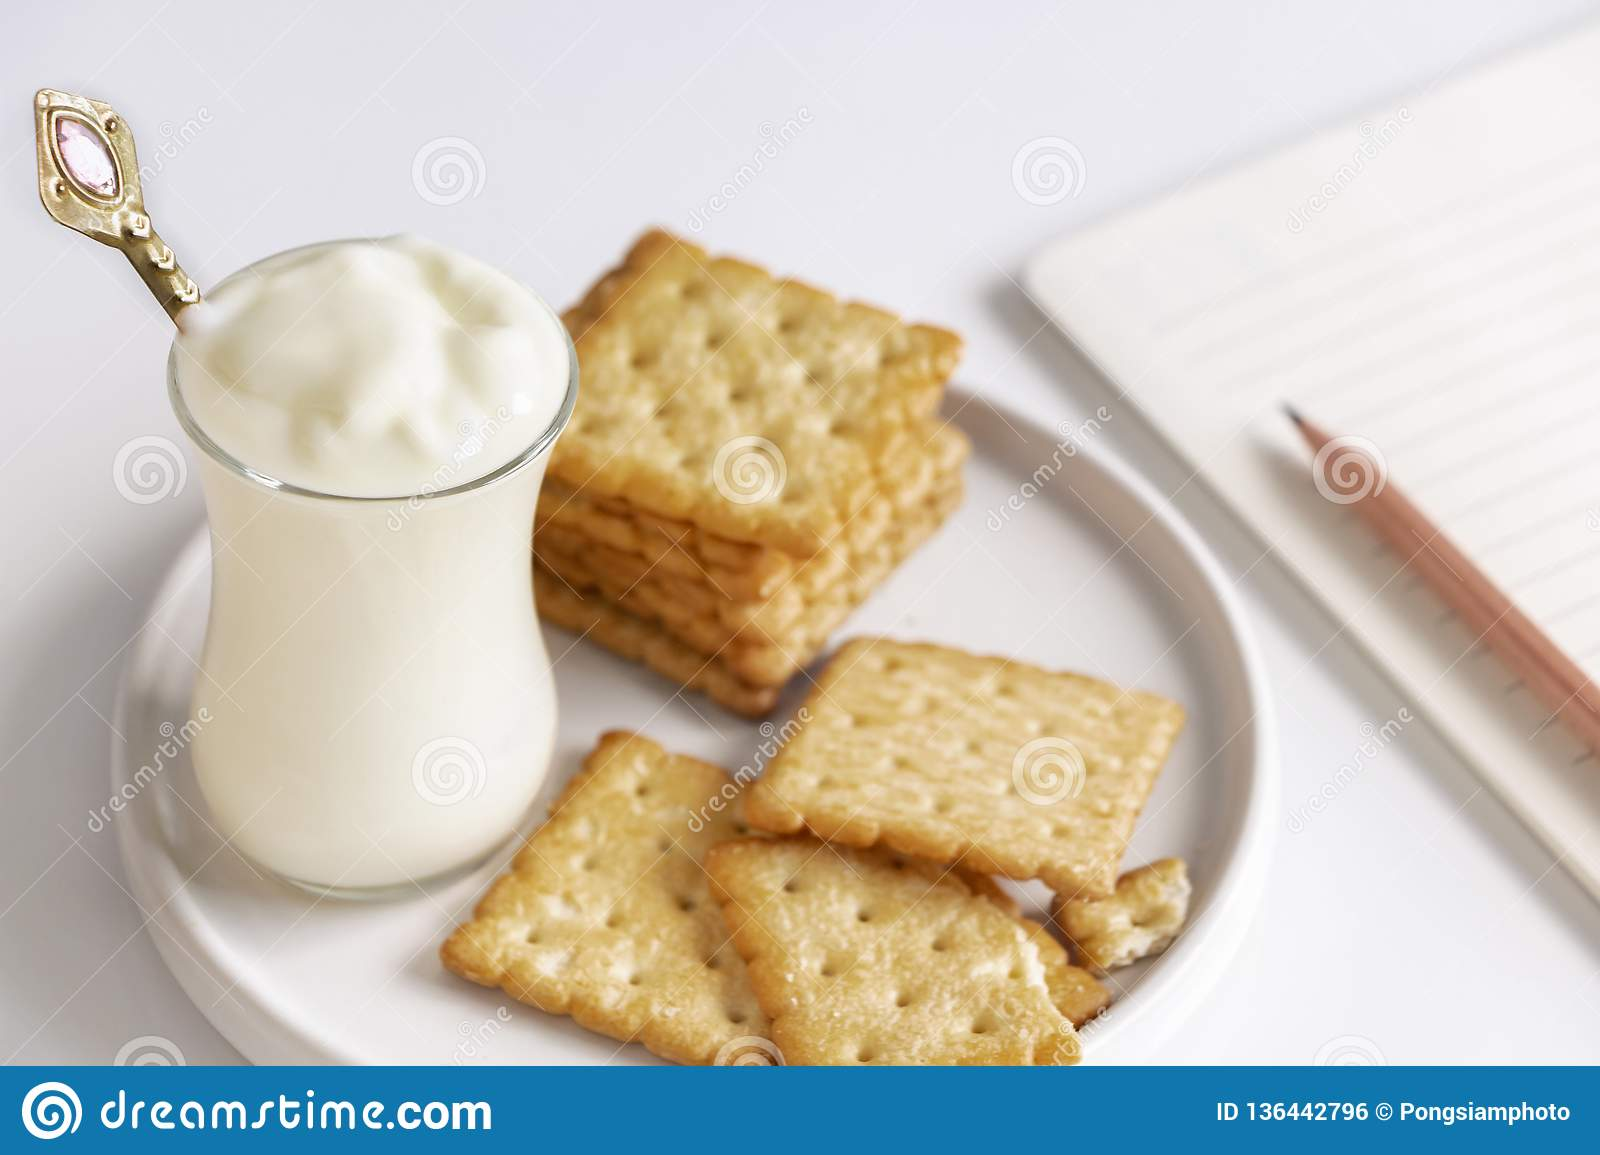 Yogurt and cookies is a healthy breakfast. Yogurt made from milk fermented by added bacteria, often sweetened and flavored